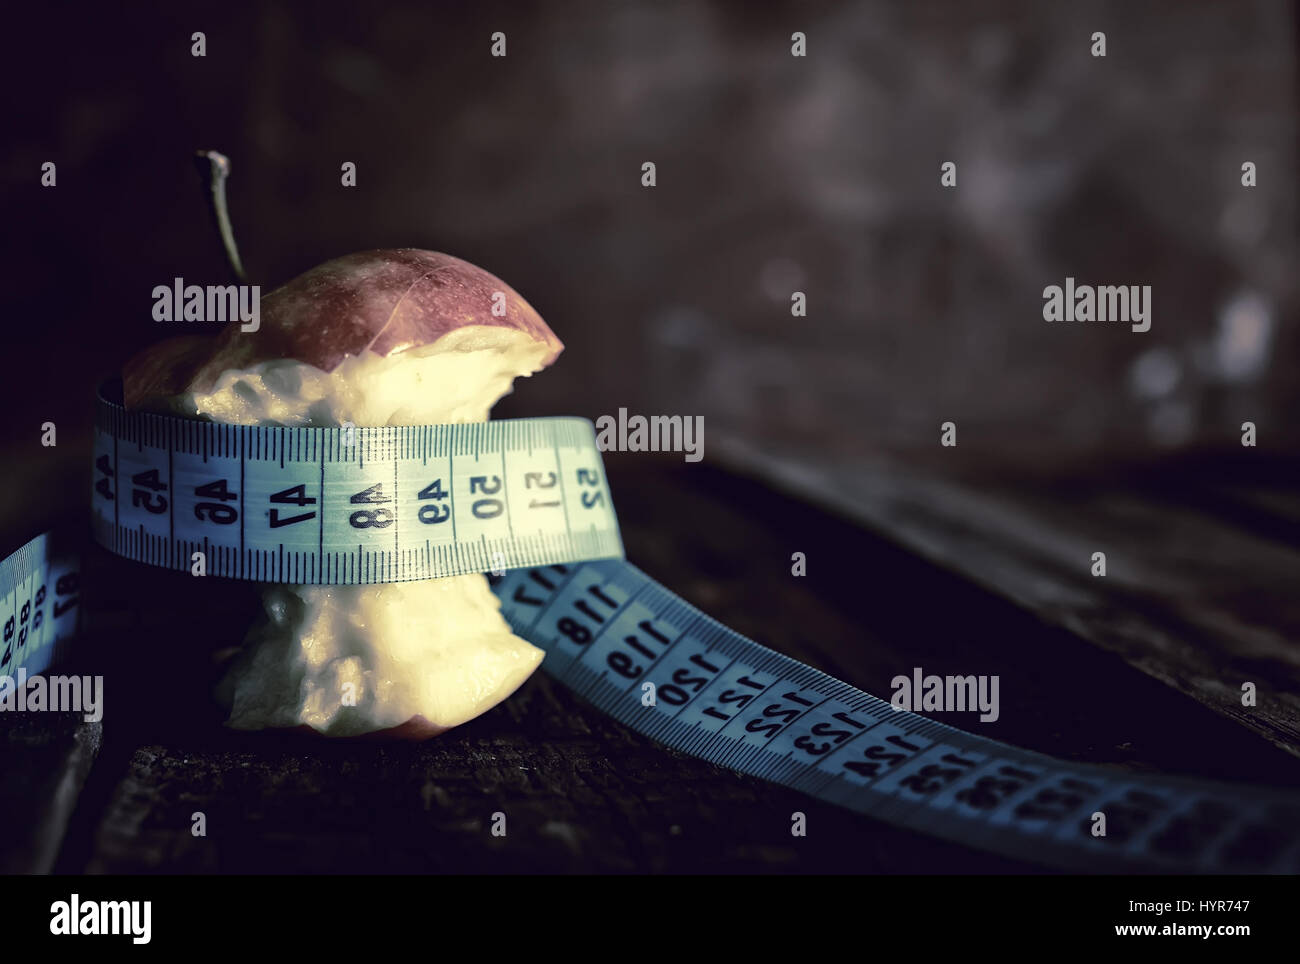 anorexia thinness measuring apple Stock Photo